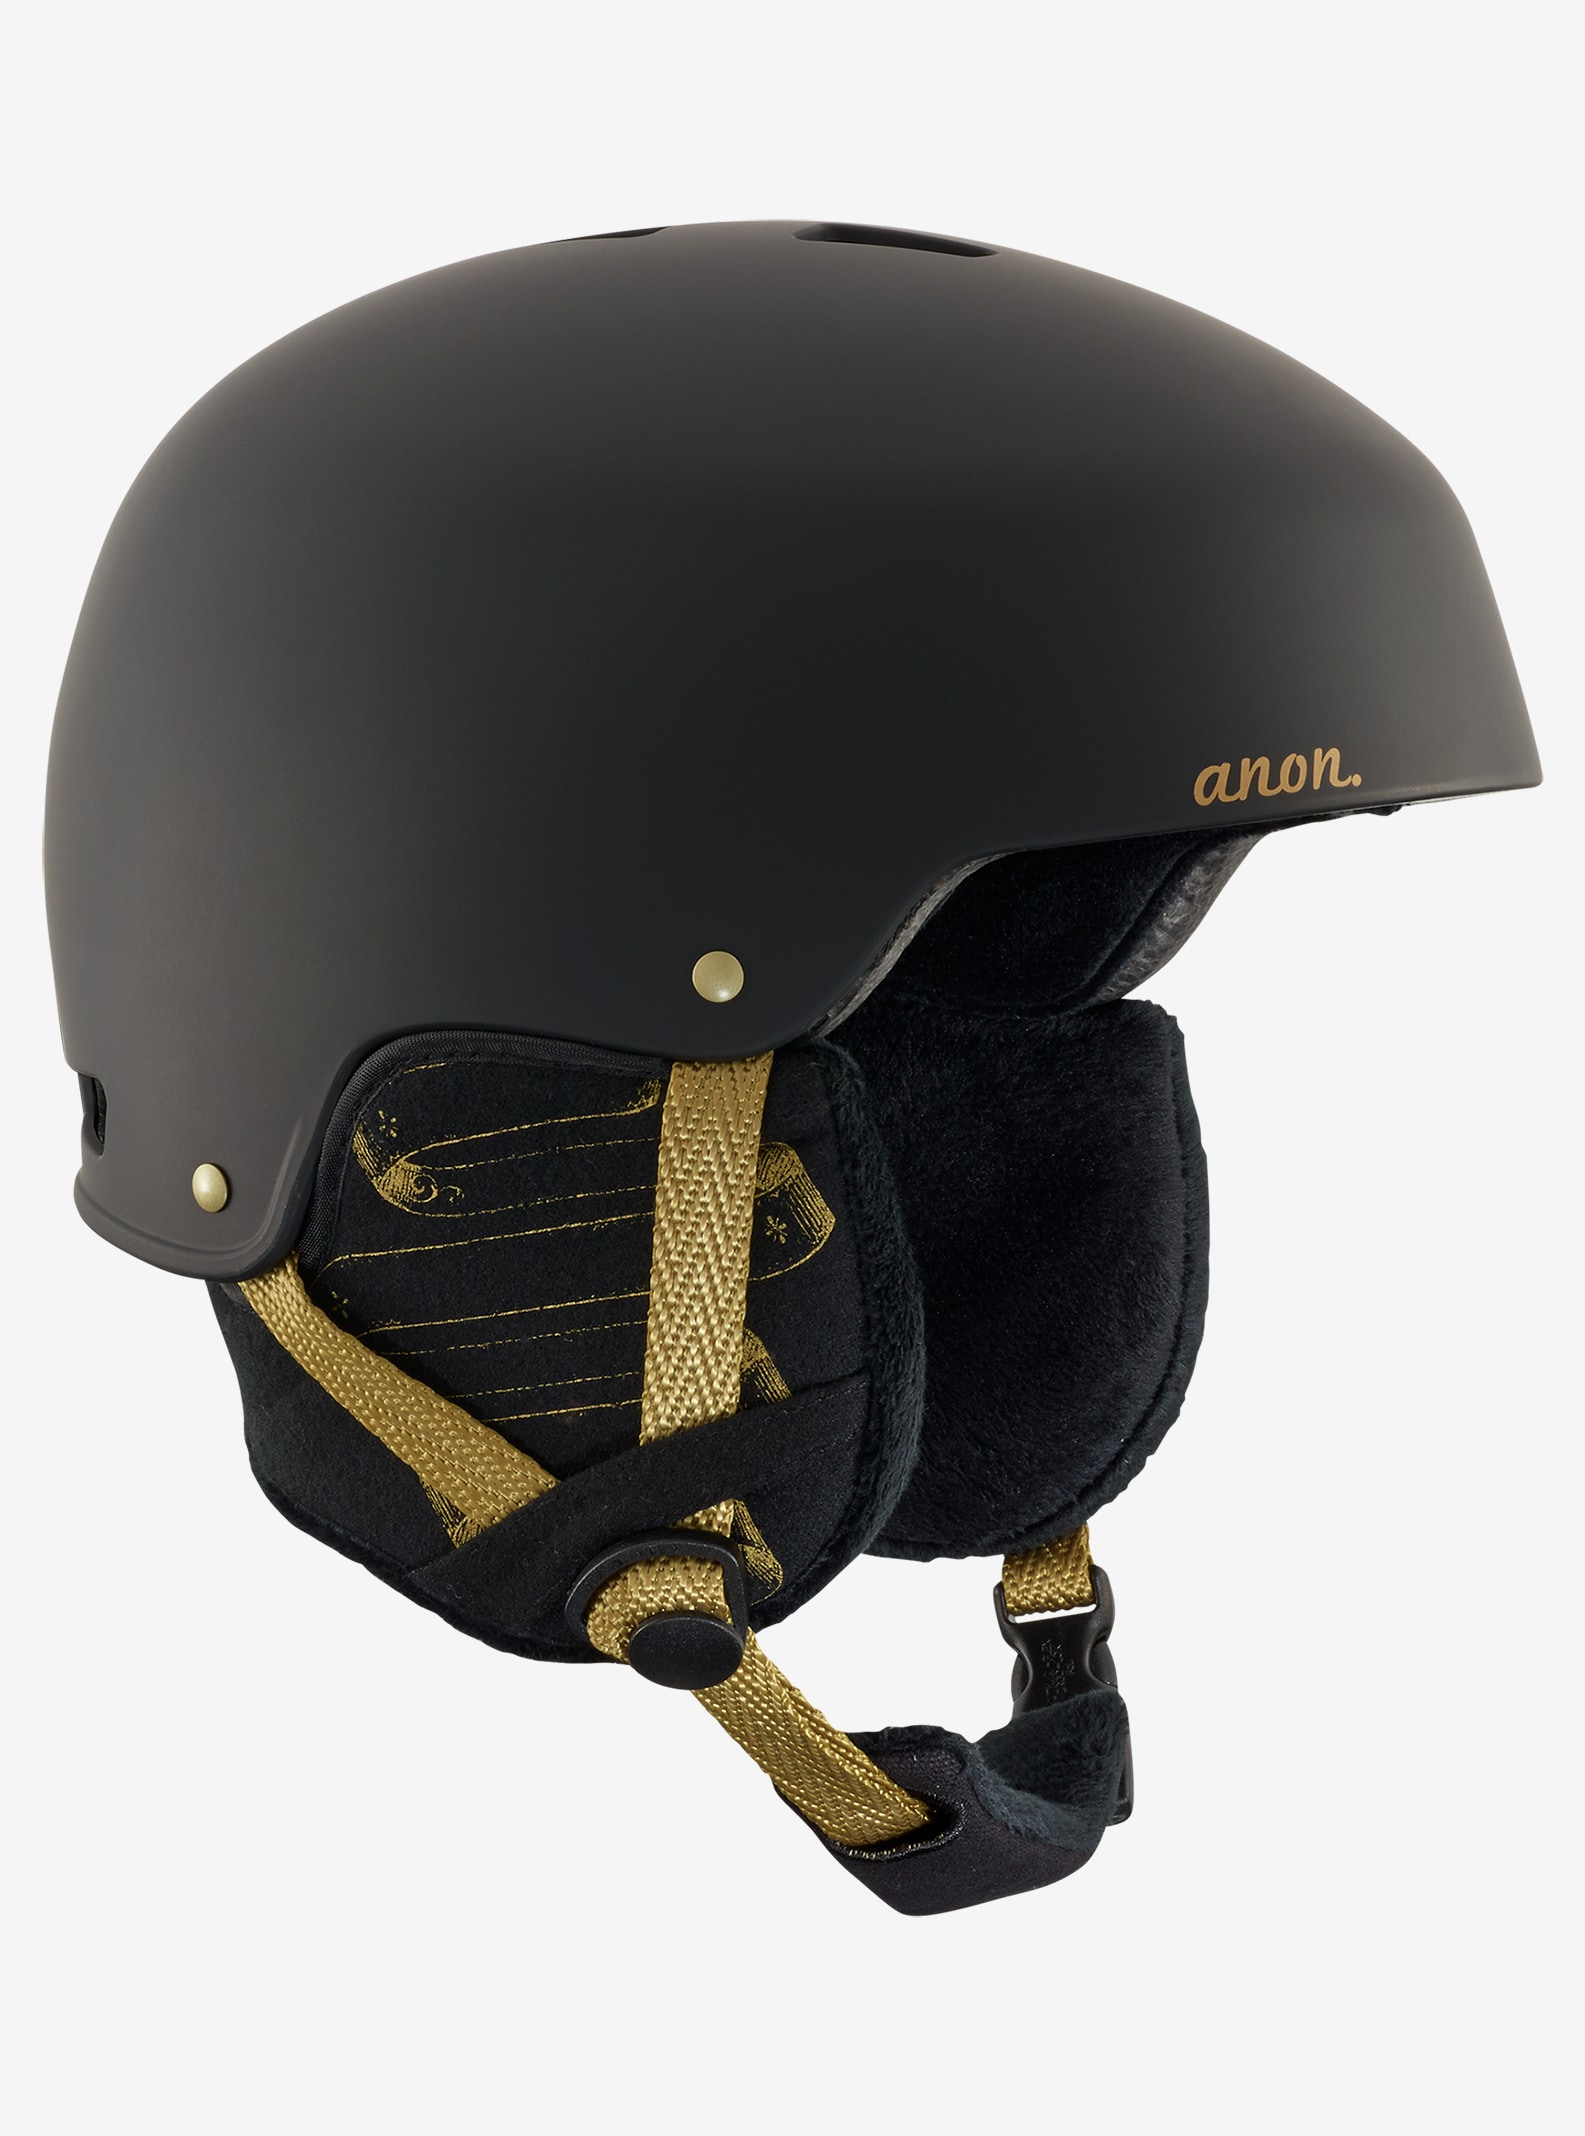 Women's Anon Lynx Helmet shown in Frontier Black